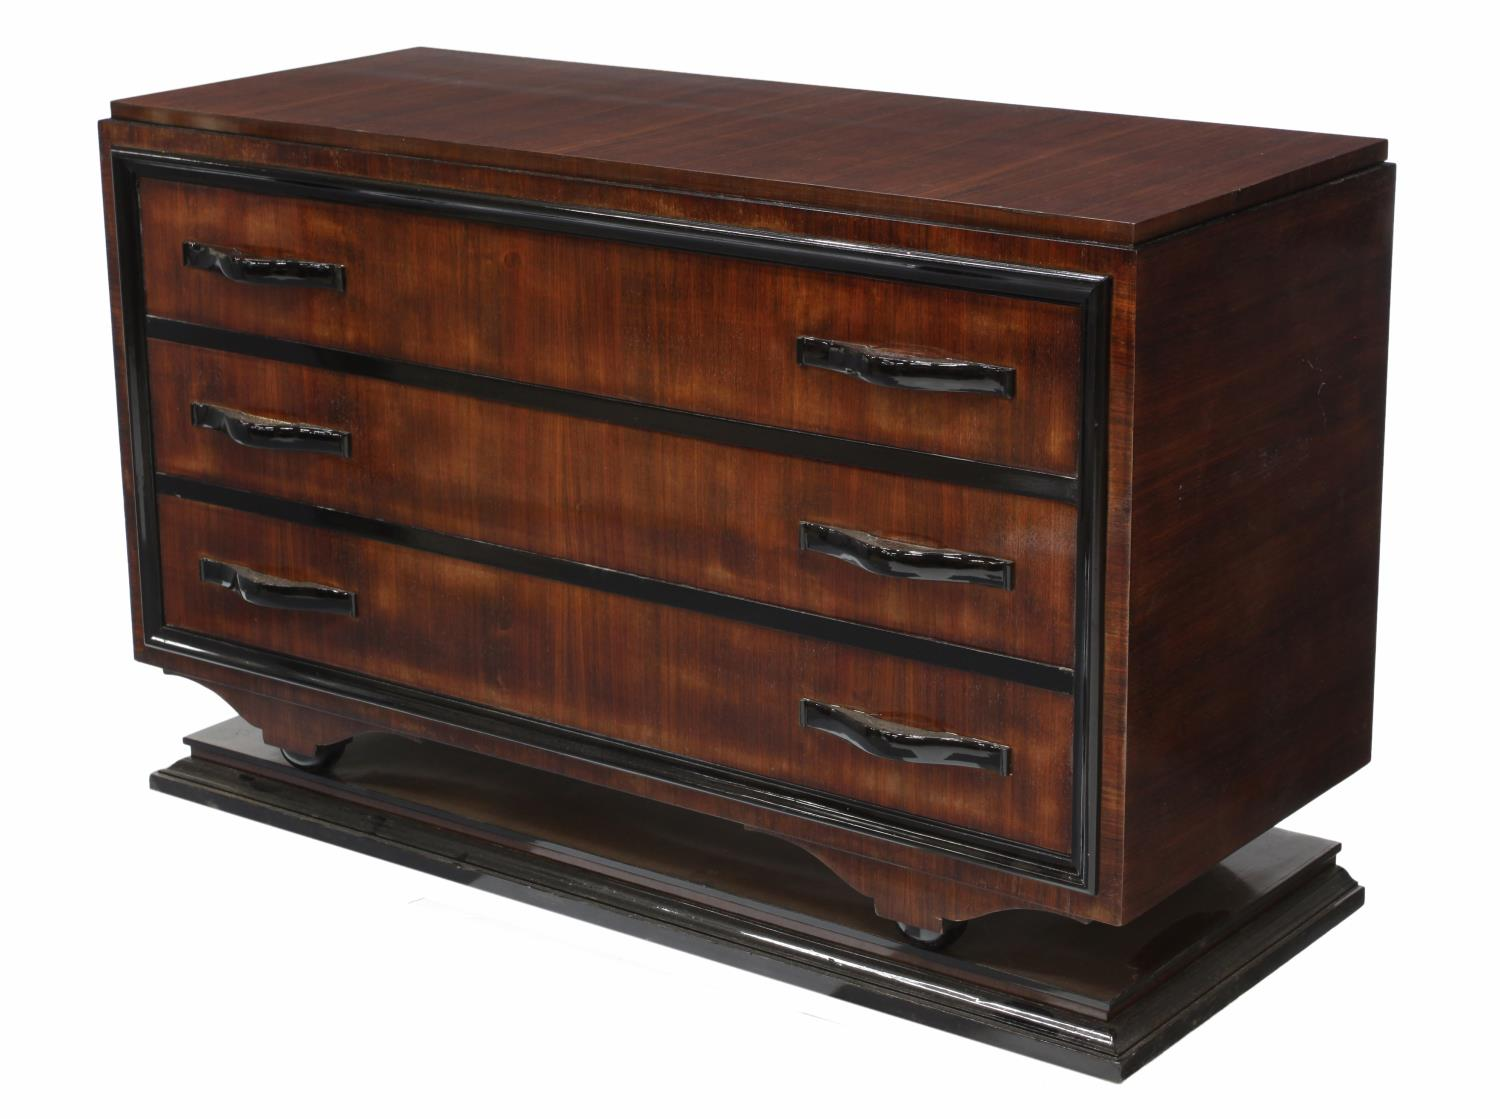 italian art deco mahogany commode 1930 39 s spectacular carved furniture and estates austin. Black Bedroom Furniture Sets. Home Design Ideas